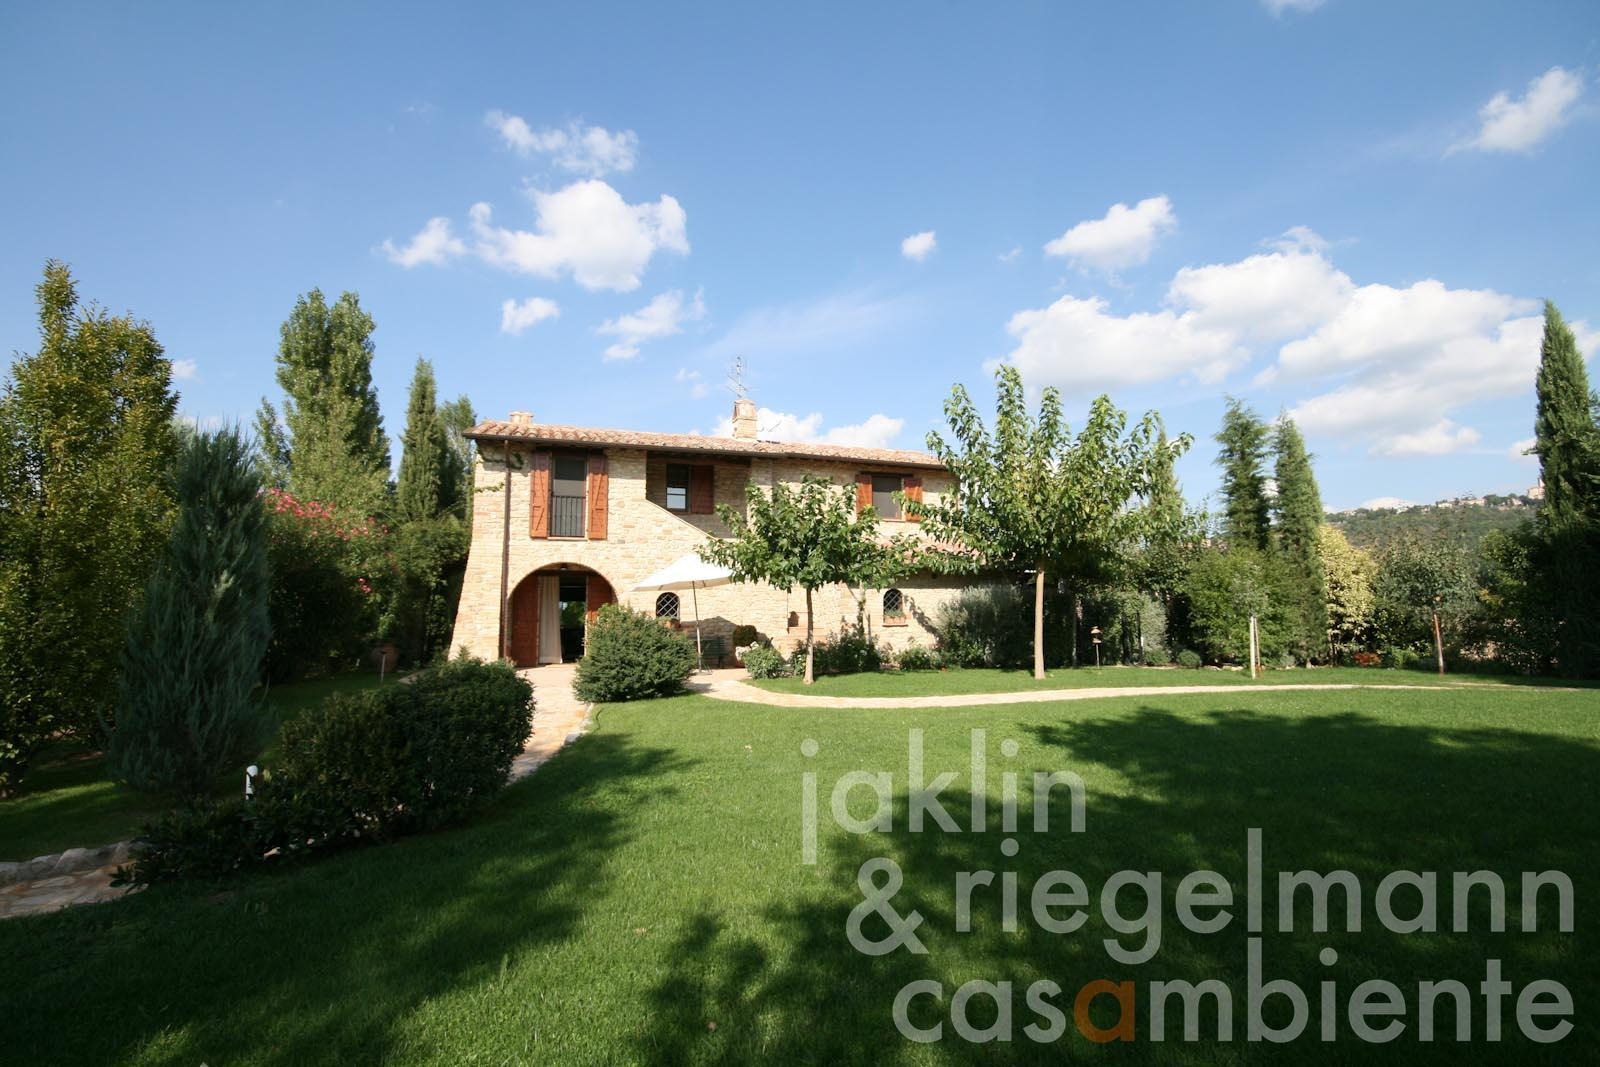 The newly built country house for sale with well-tended garden and pool close to Collazzone in Umbria